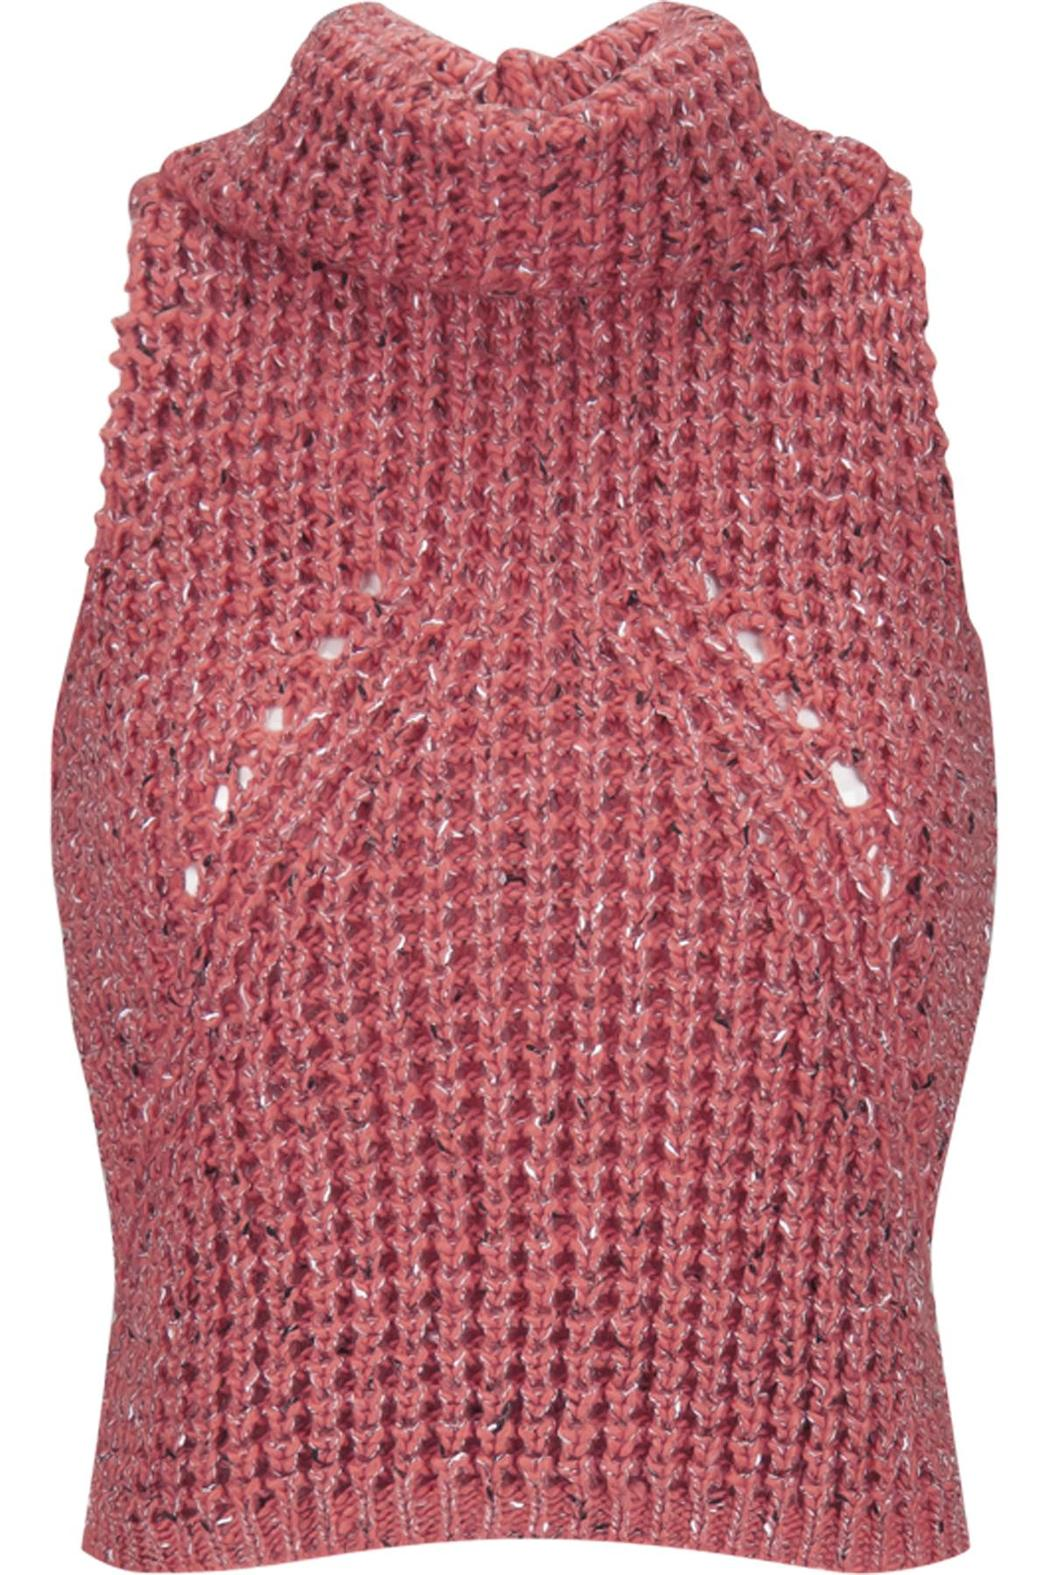 51dfcdabf0051 Bishop + Young Pink Cowl Sweater from Bucktown by Havlan   West ...